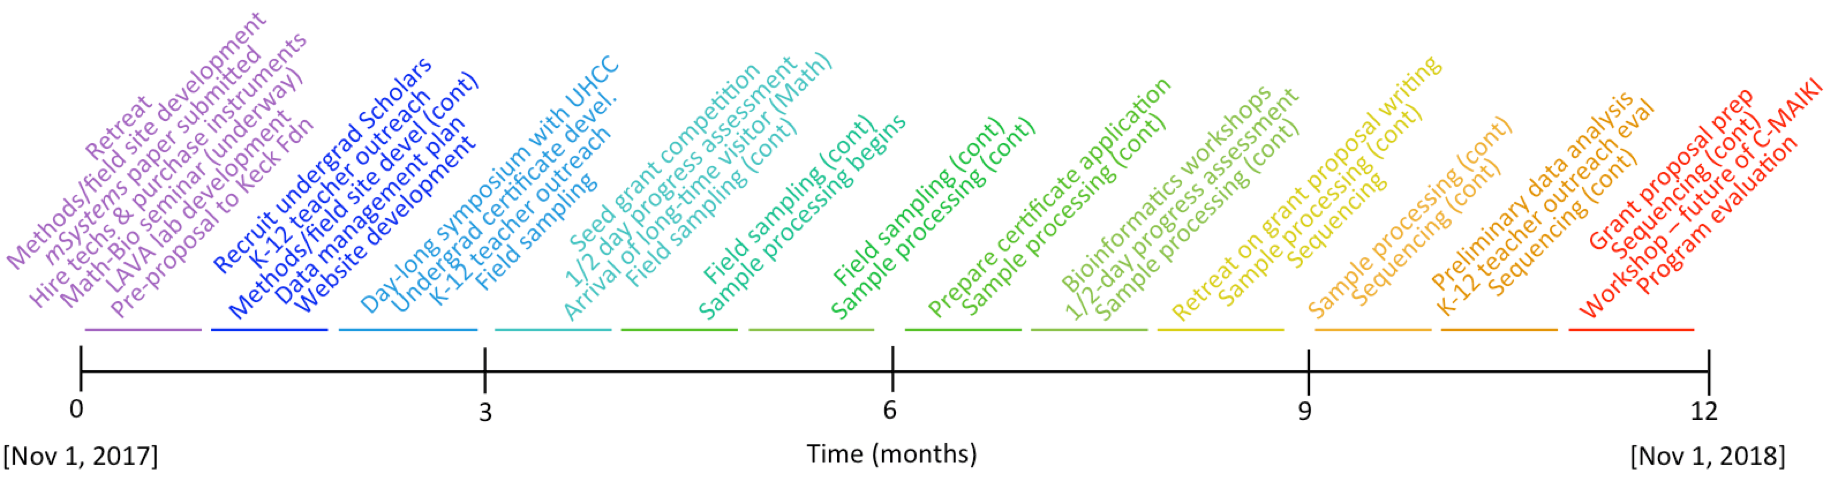 timeline of watershed project